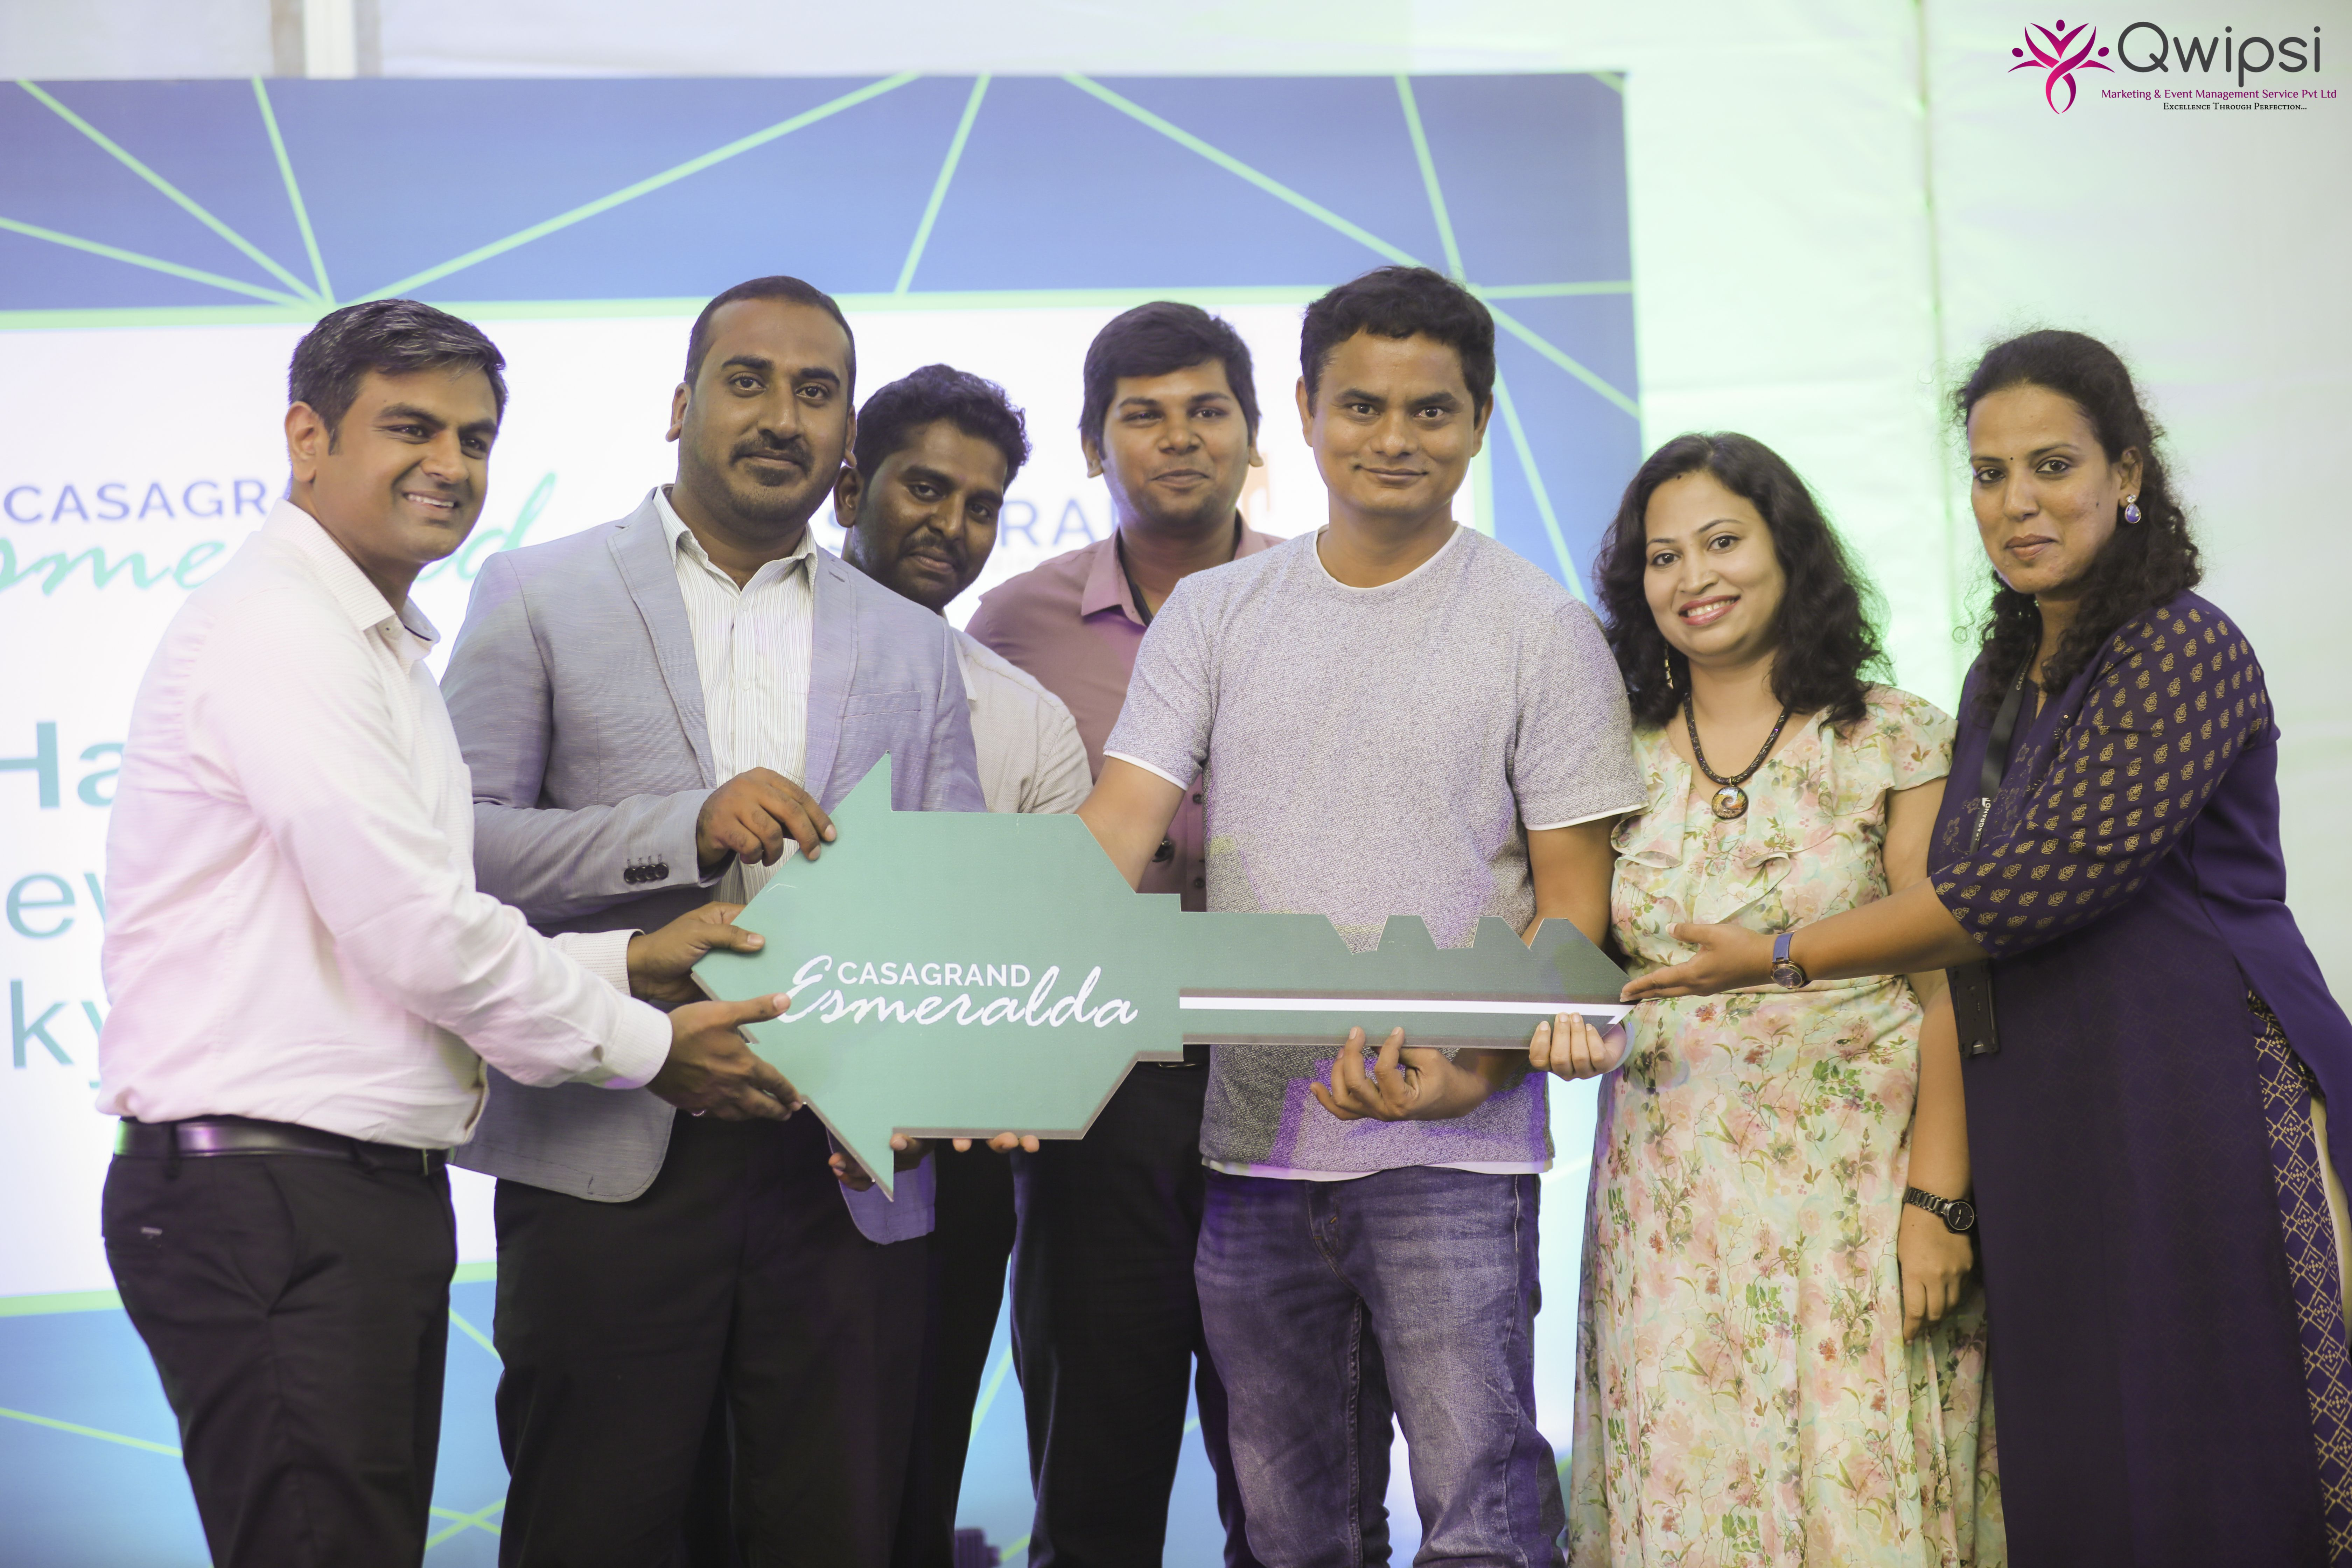 Sathish CG, Director of Bangalore Zone, Casagrand Builder Pvt. Ltd. handing over the key to the homebuyer at the event (1)